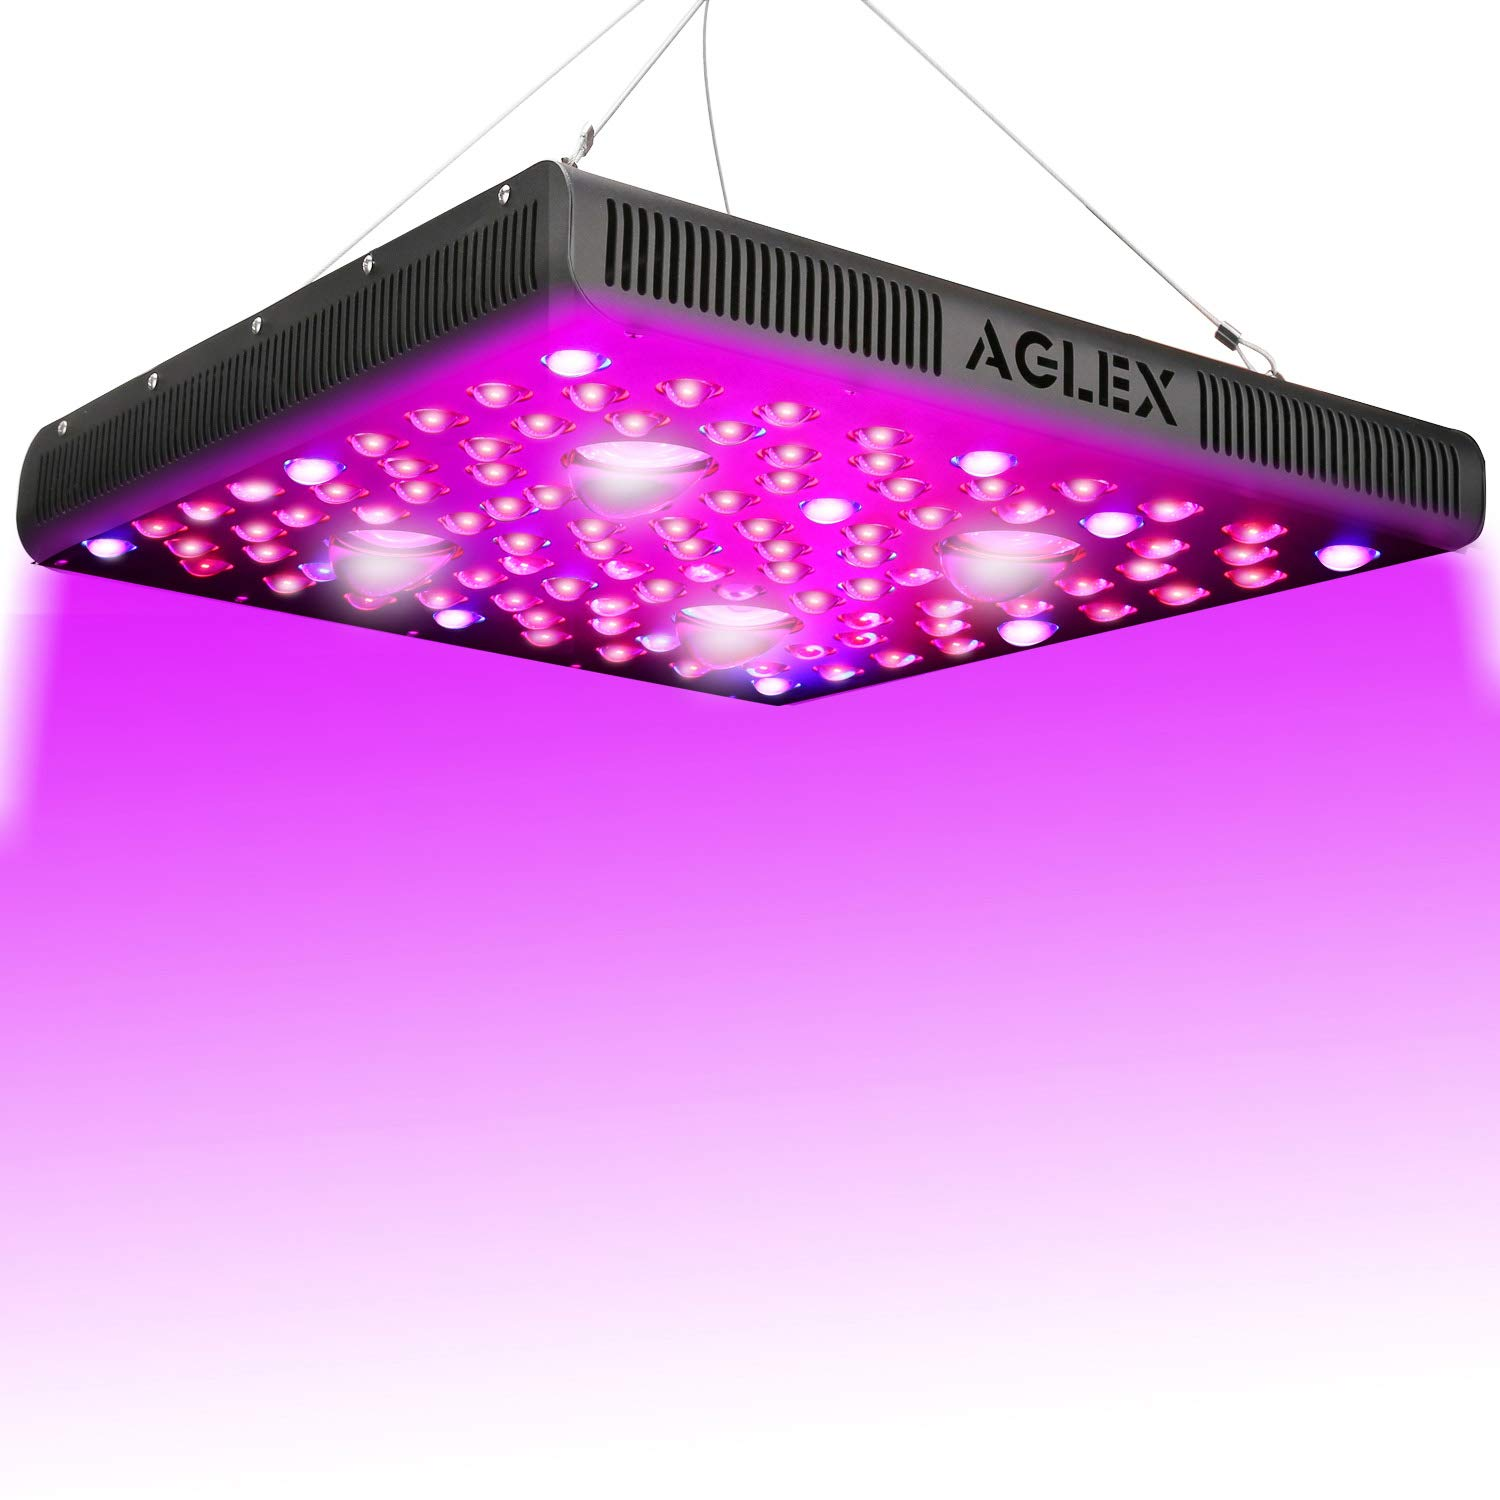 2000 Watt LED Grow Light, Full Spectrum UV IR COB Series Plant Grow Lamp,  with Daisy Chain, Veg and Bloom Switch, for Hydroponic Greenhouse Indoor